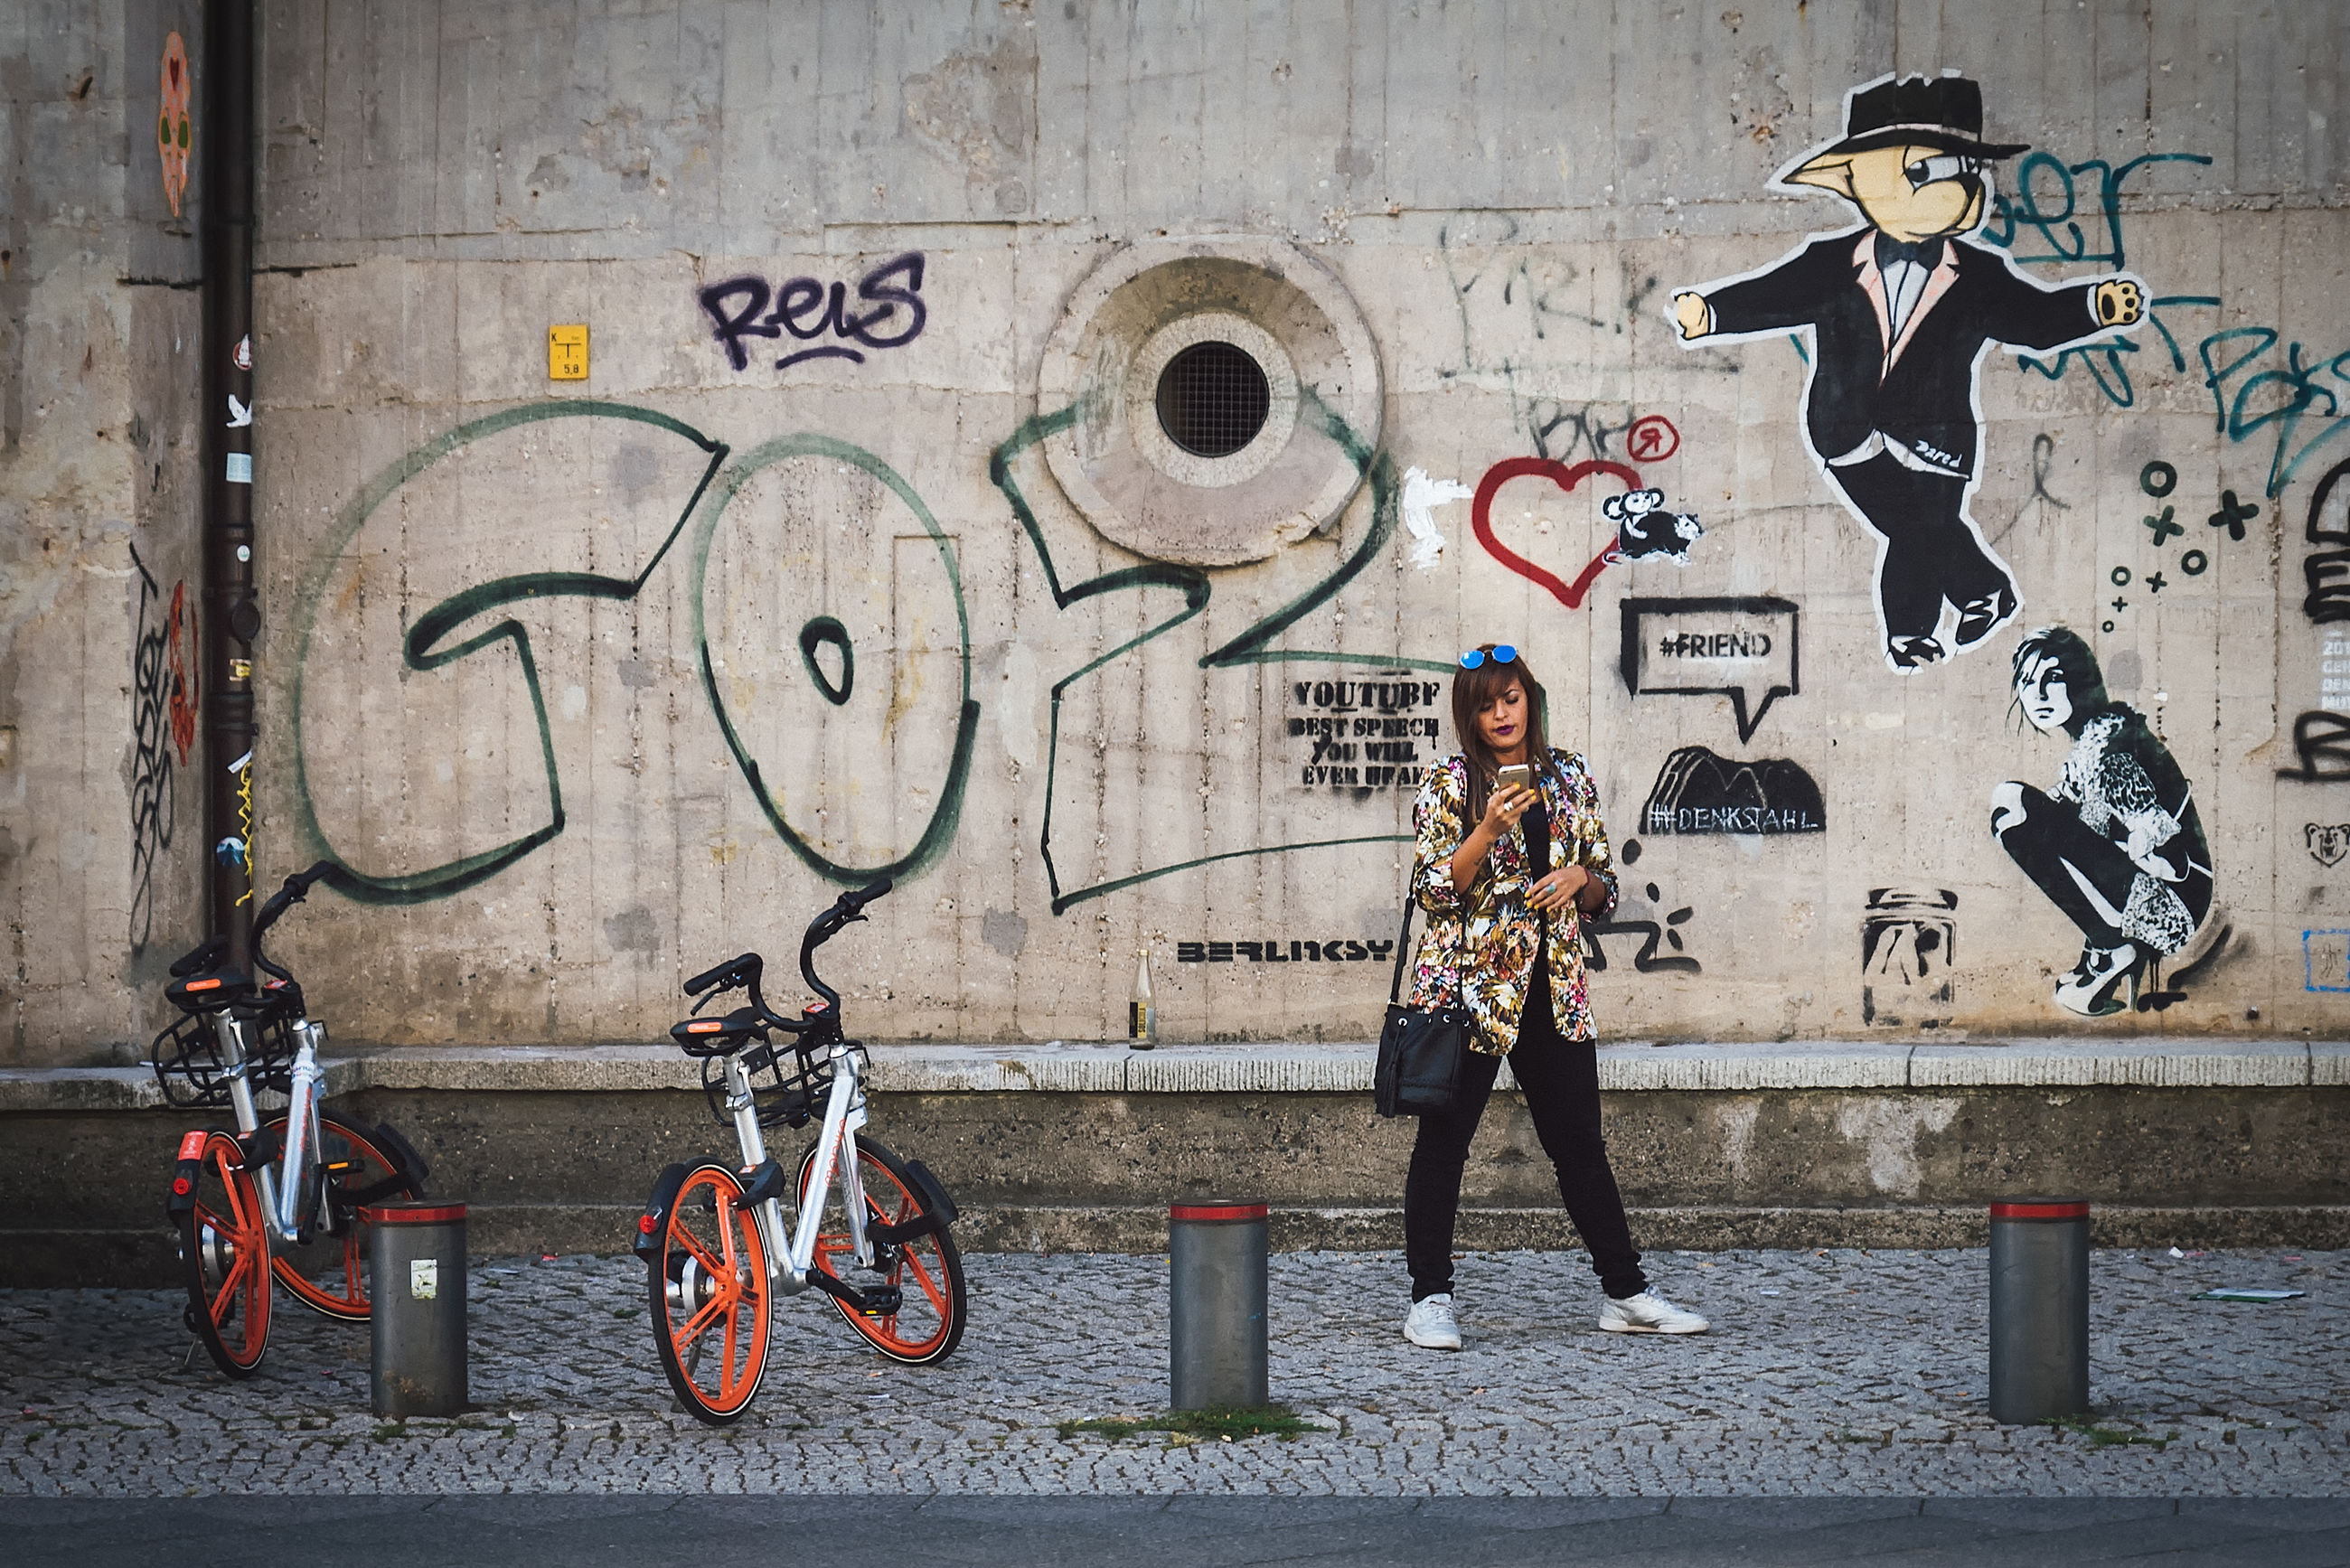 transportation, full length, bicycle, graffiti, architecture, mode of transportation, city, one person, casual clothing, creativity, real people, wall - building feature, young adult, leisure activity, building exterior, art and craft, lifestyles, built structure, street, outdoors